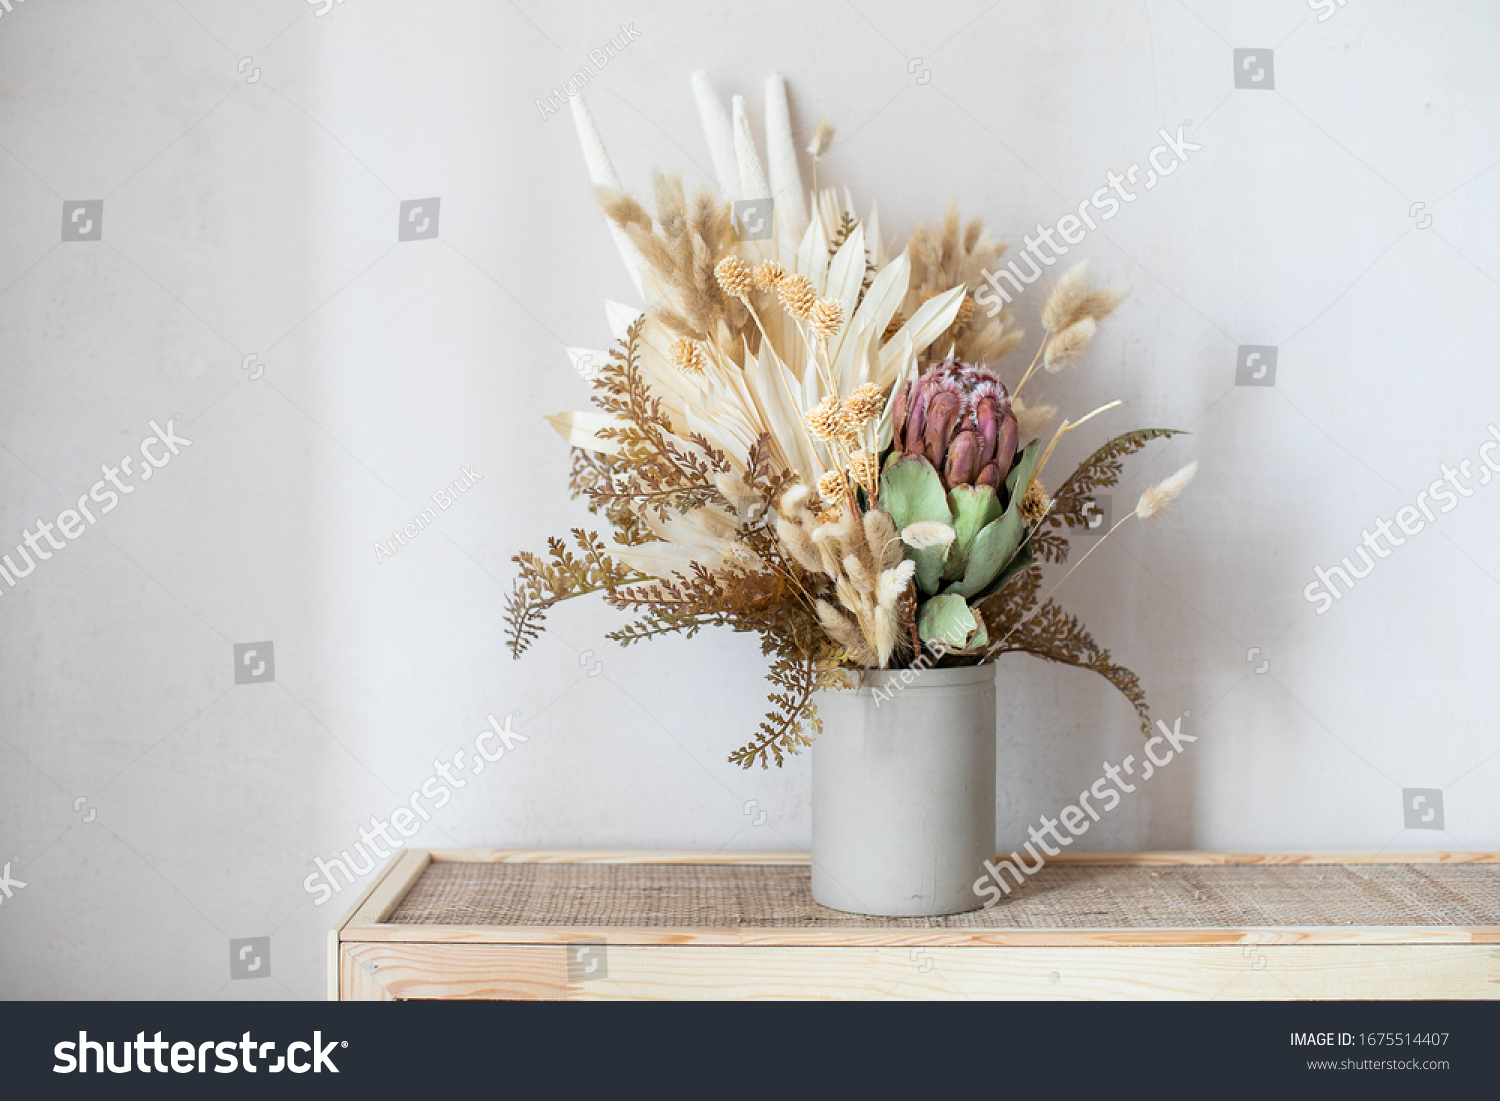 Minimalistic composition of dried flowers in cylindrical ceramic vase as home decoration.  #1675514407